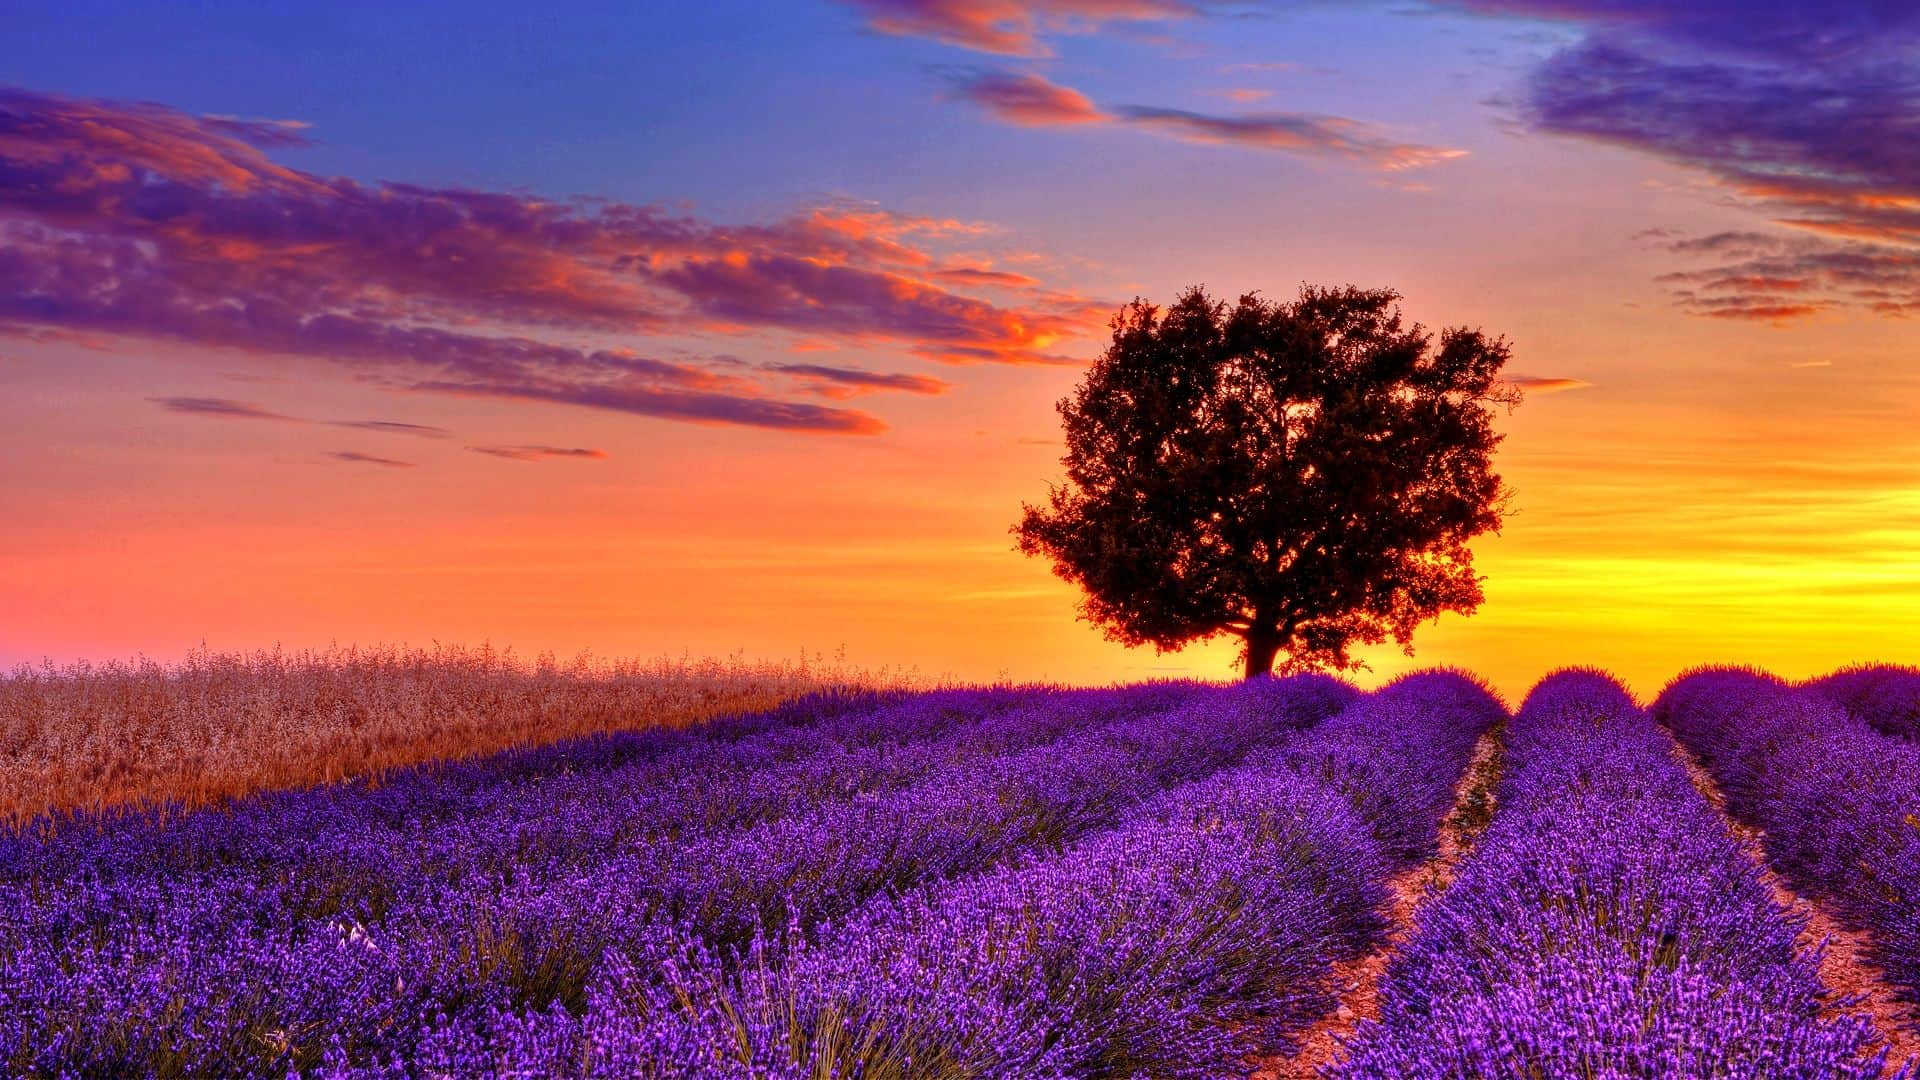 Lavender Flower Field Sunset High Resolution Wallpaper For Desktop